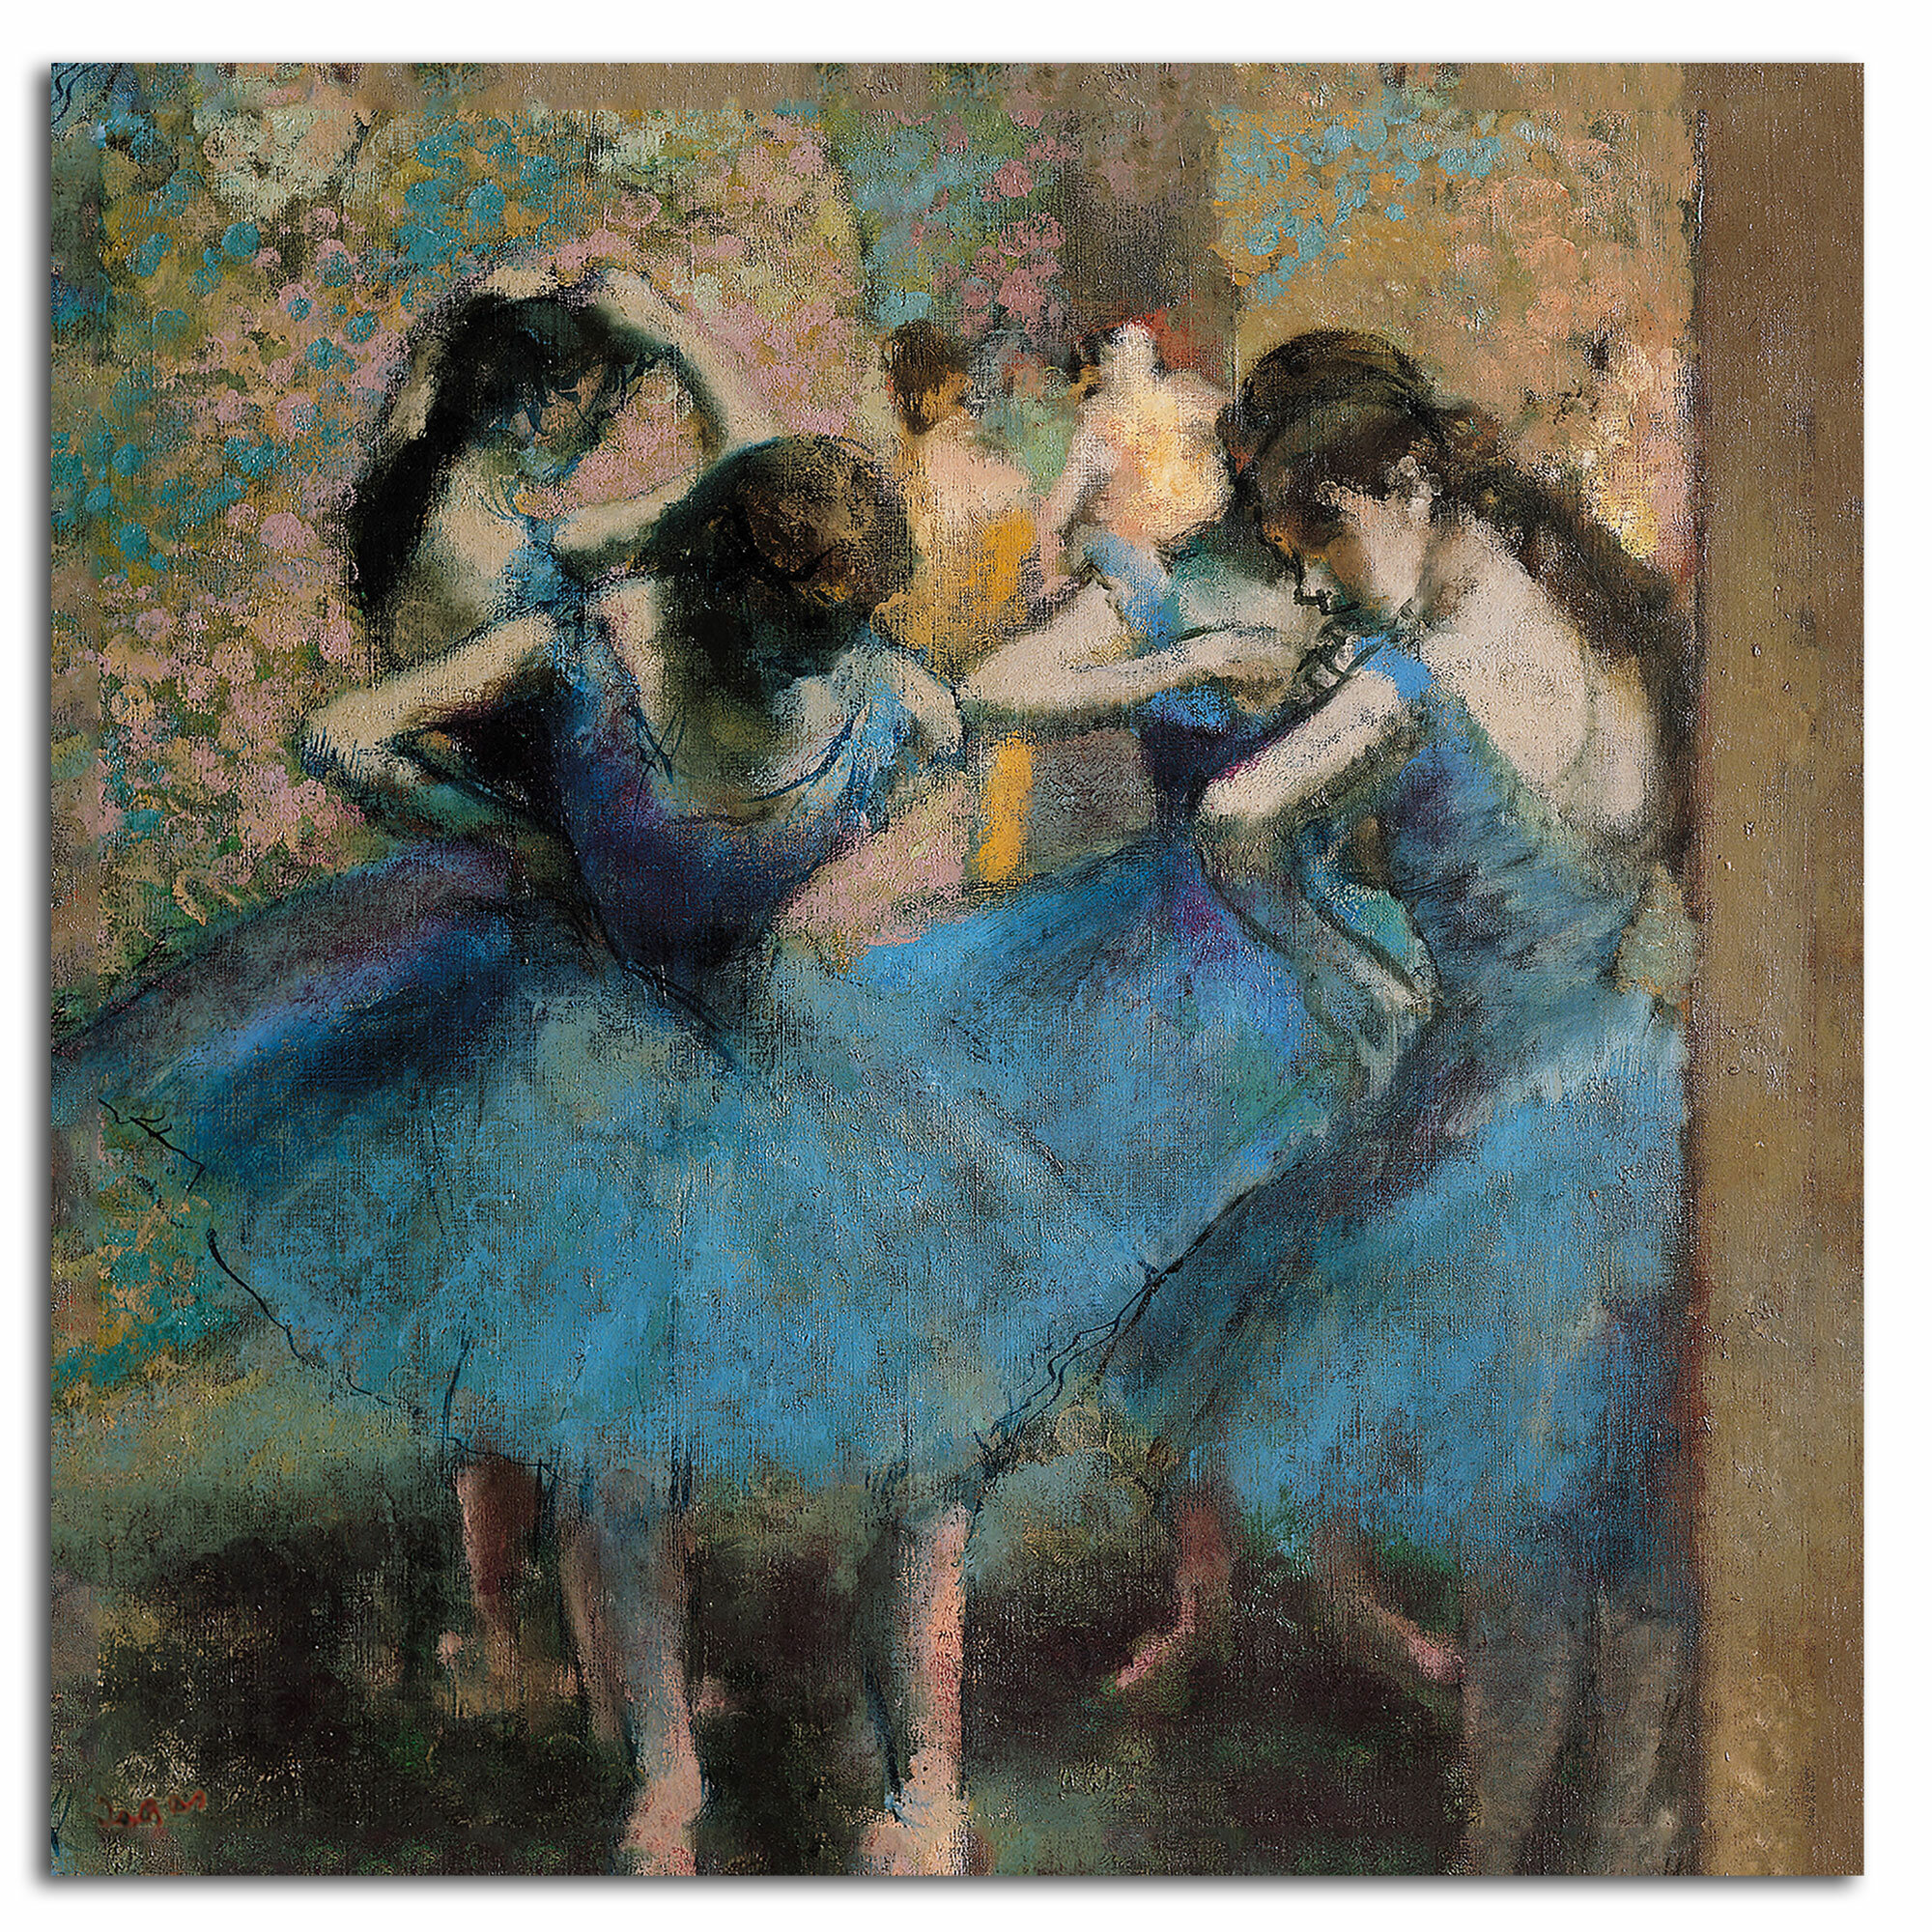 BALLET DANCER WITH HANDS ON HIPS EDGAR DEGAS PAINTING ART REAL CANVAS PRINT